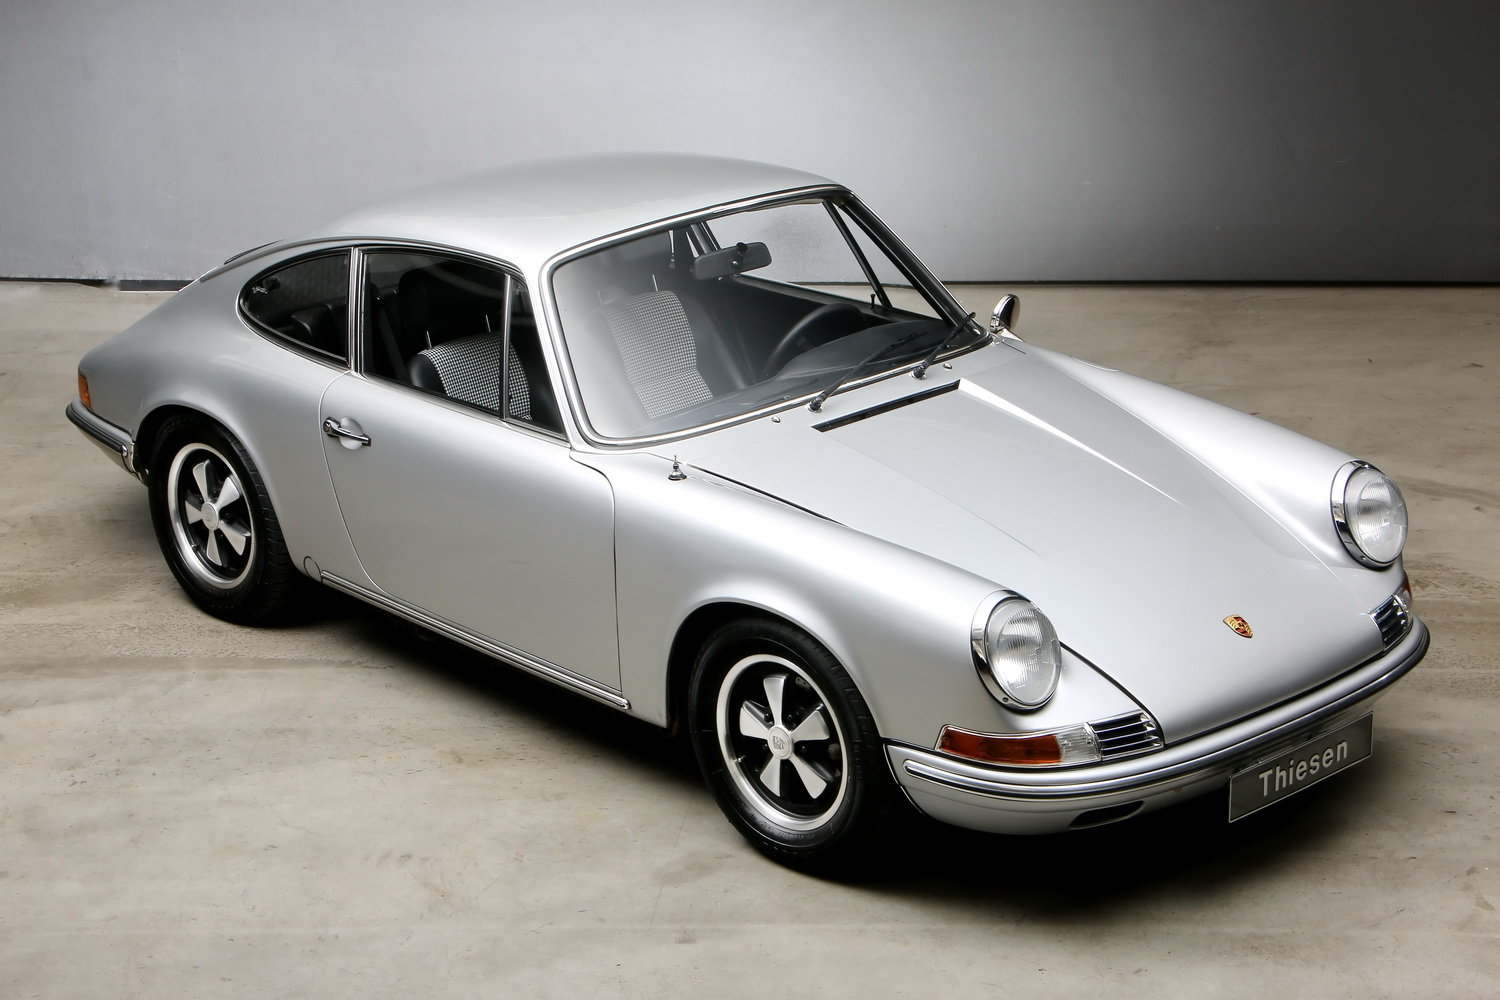 1970 911T 2.2 Ltr. Coup - Individualumbau - For Sale (picture 4 of 12)